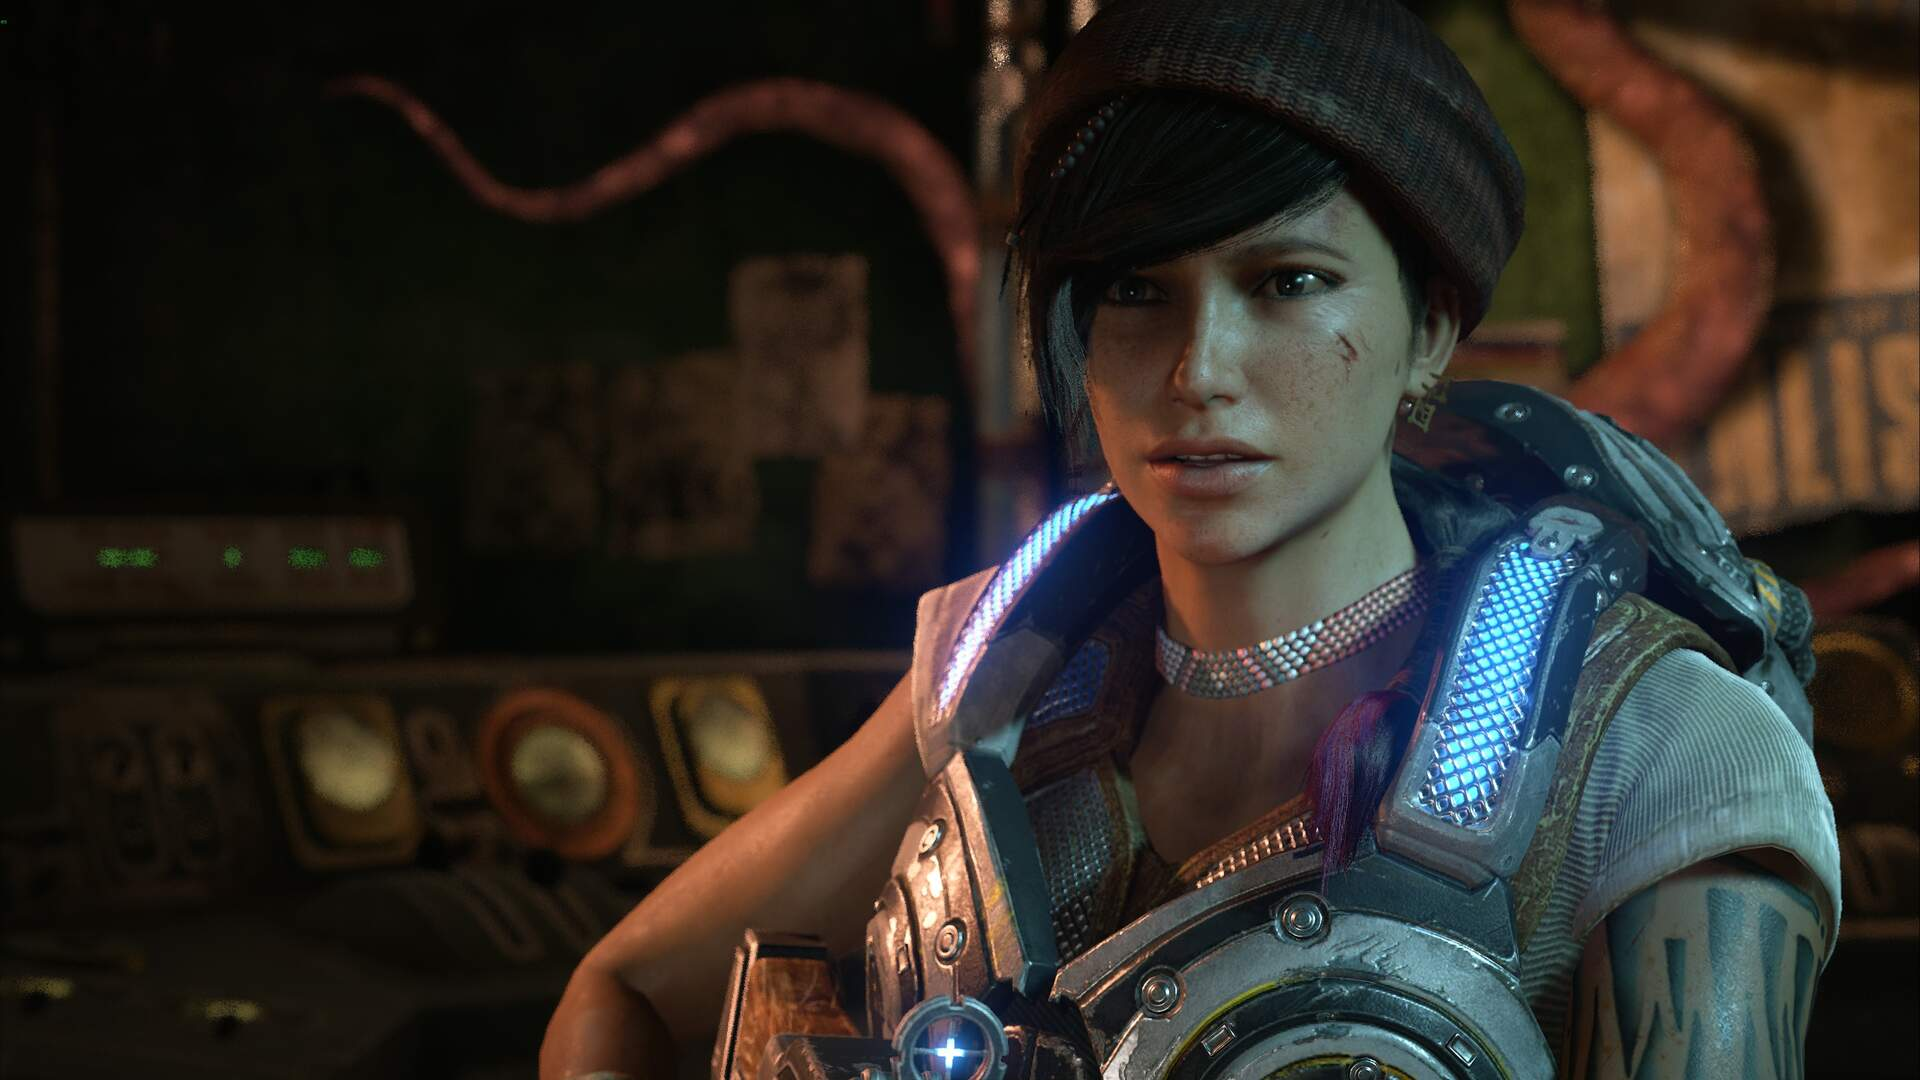 First-Party Xbox Games Like Gears 5 are Coming to Steam